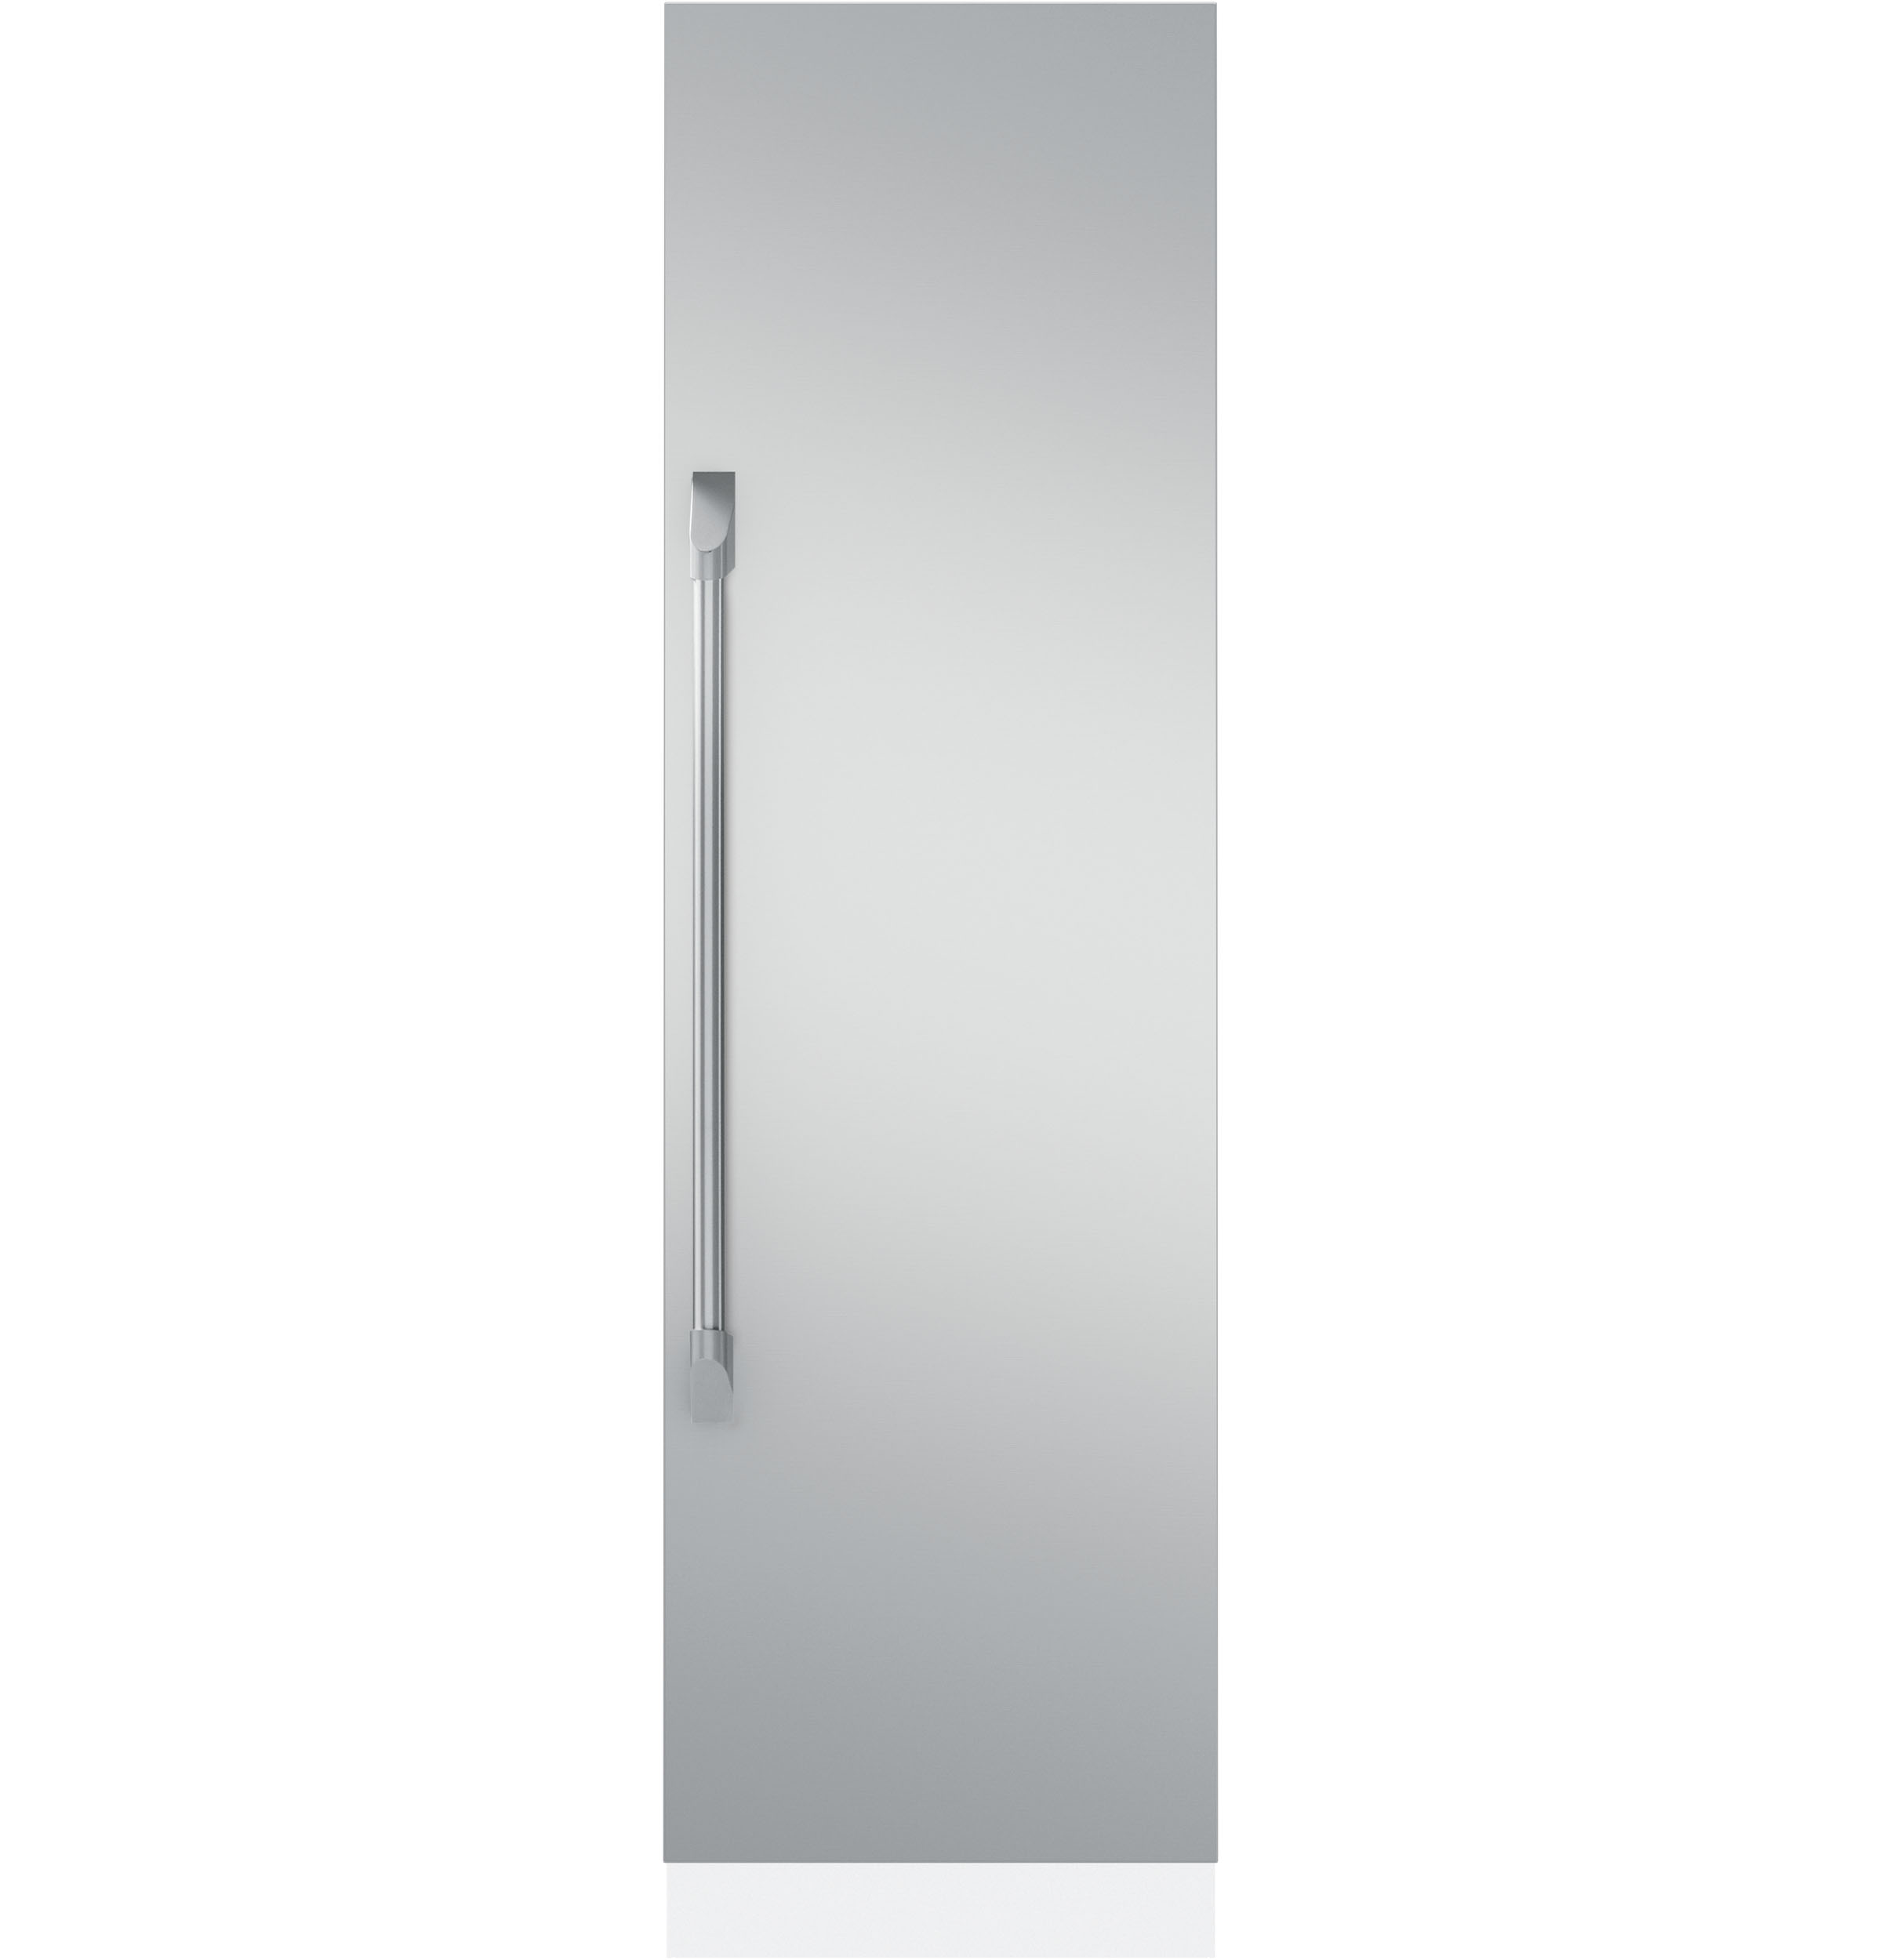 "Monogram 24"" Fully Integrated Refrigerator - Pro- Stainless Steel Door Panel Kit"